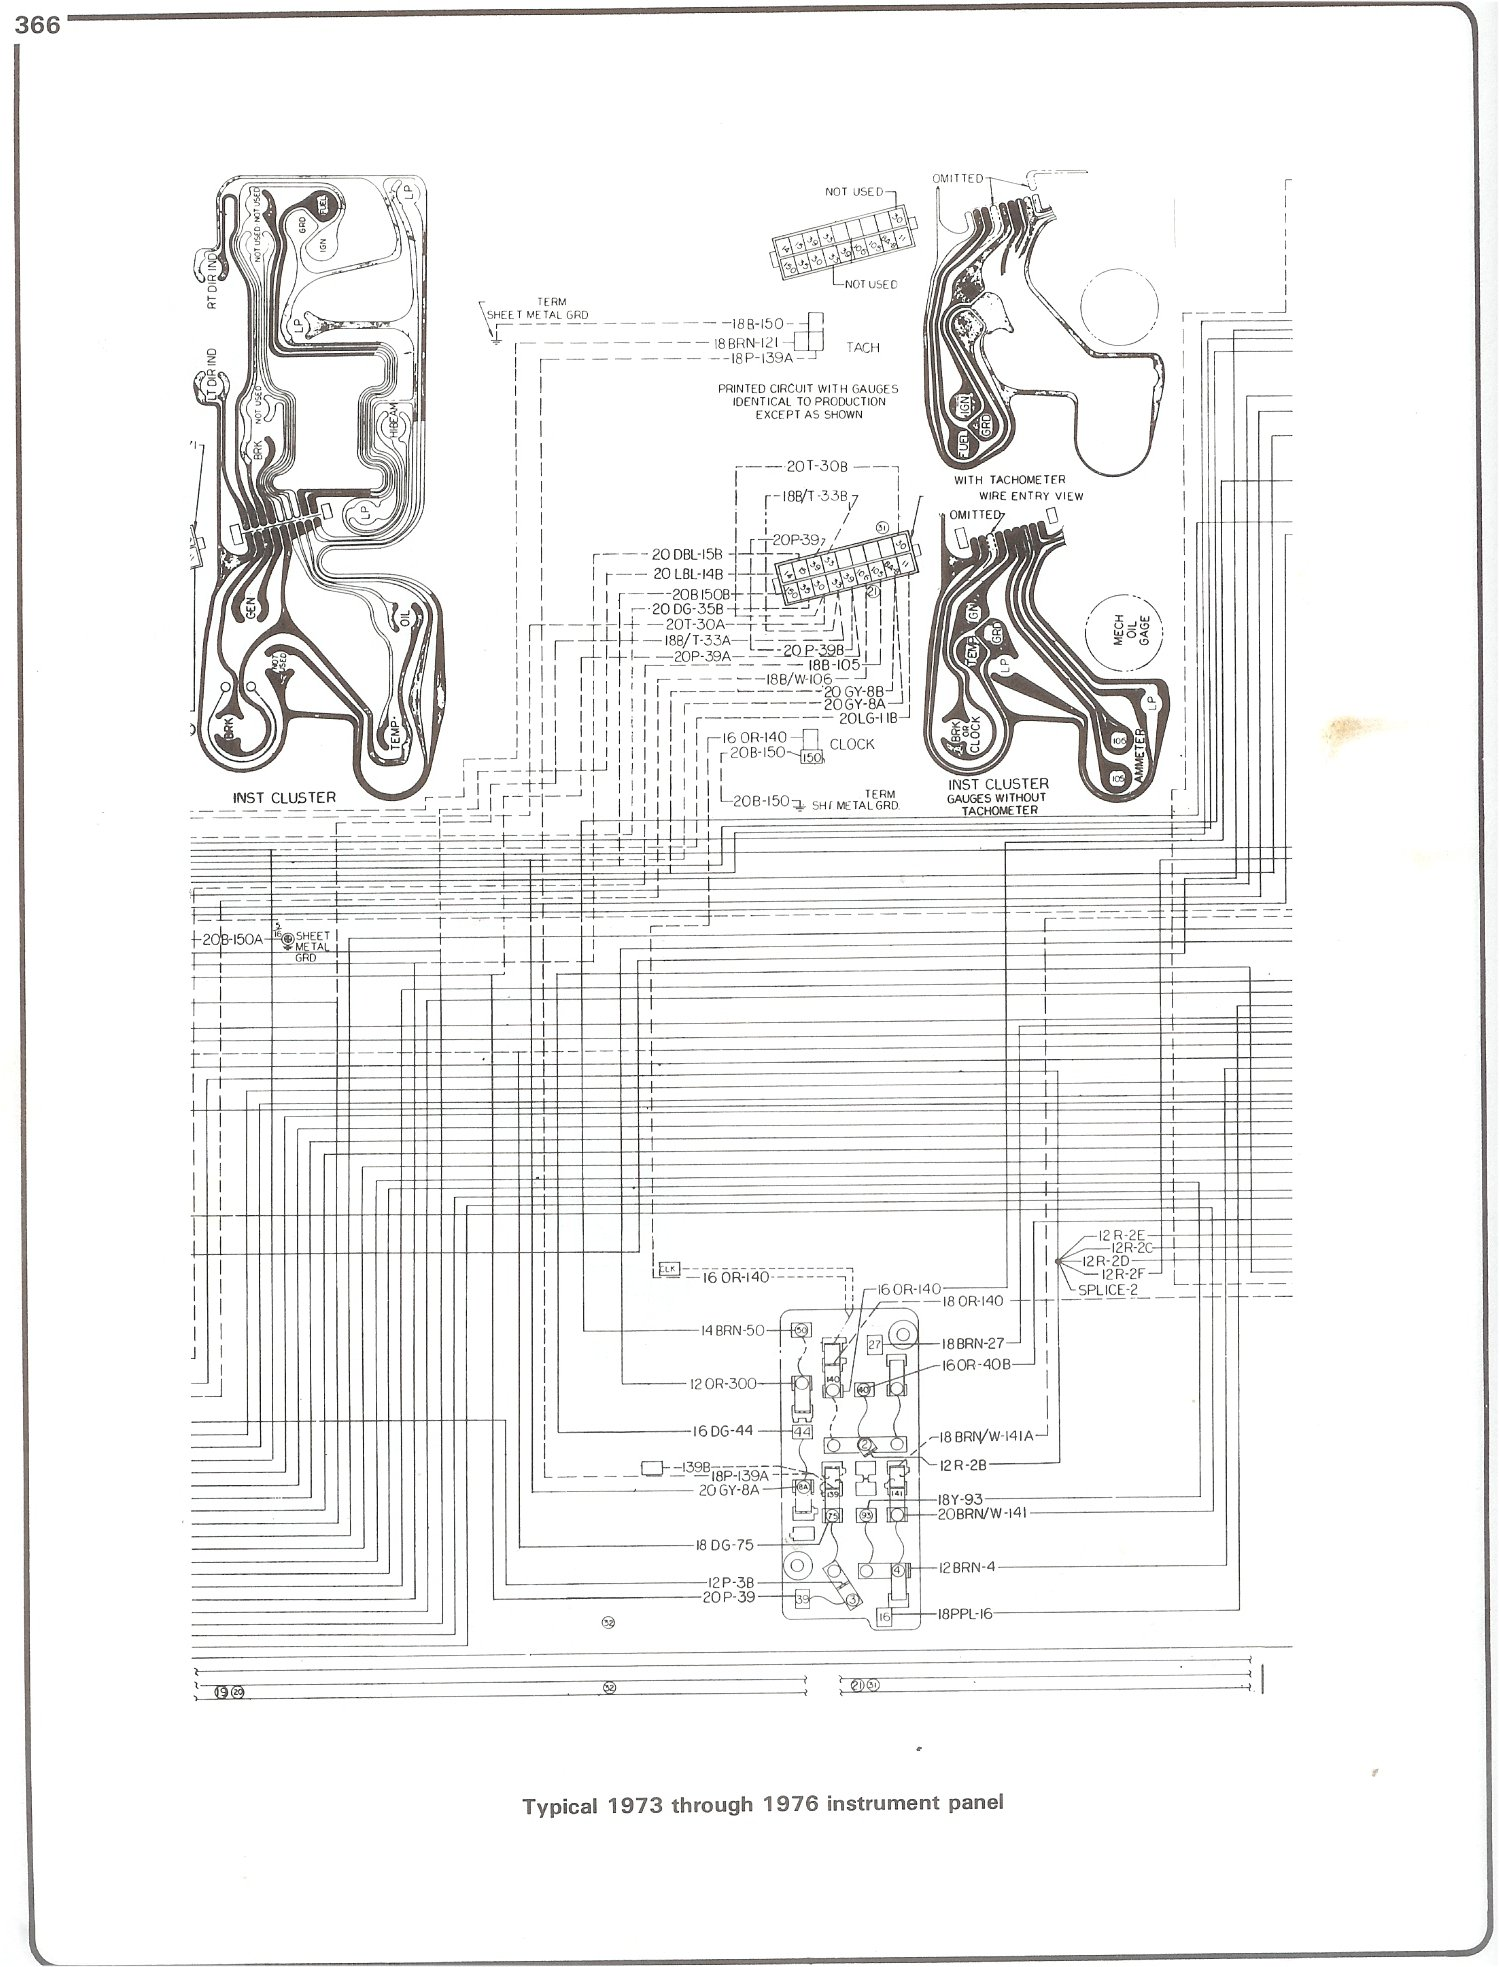 Complete 7387 Wiring Diagrams – Jeep Cj Instrument Cluster Wiring Diagram